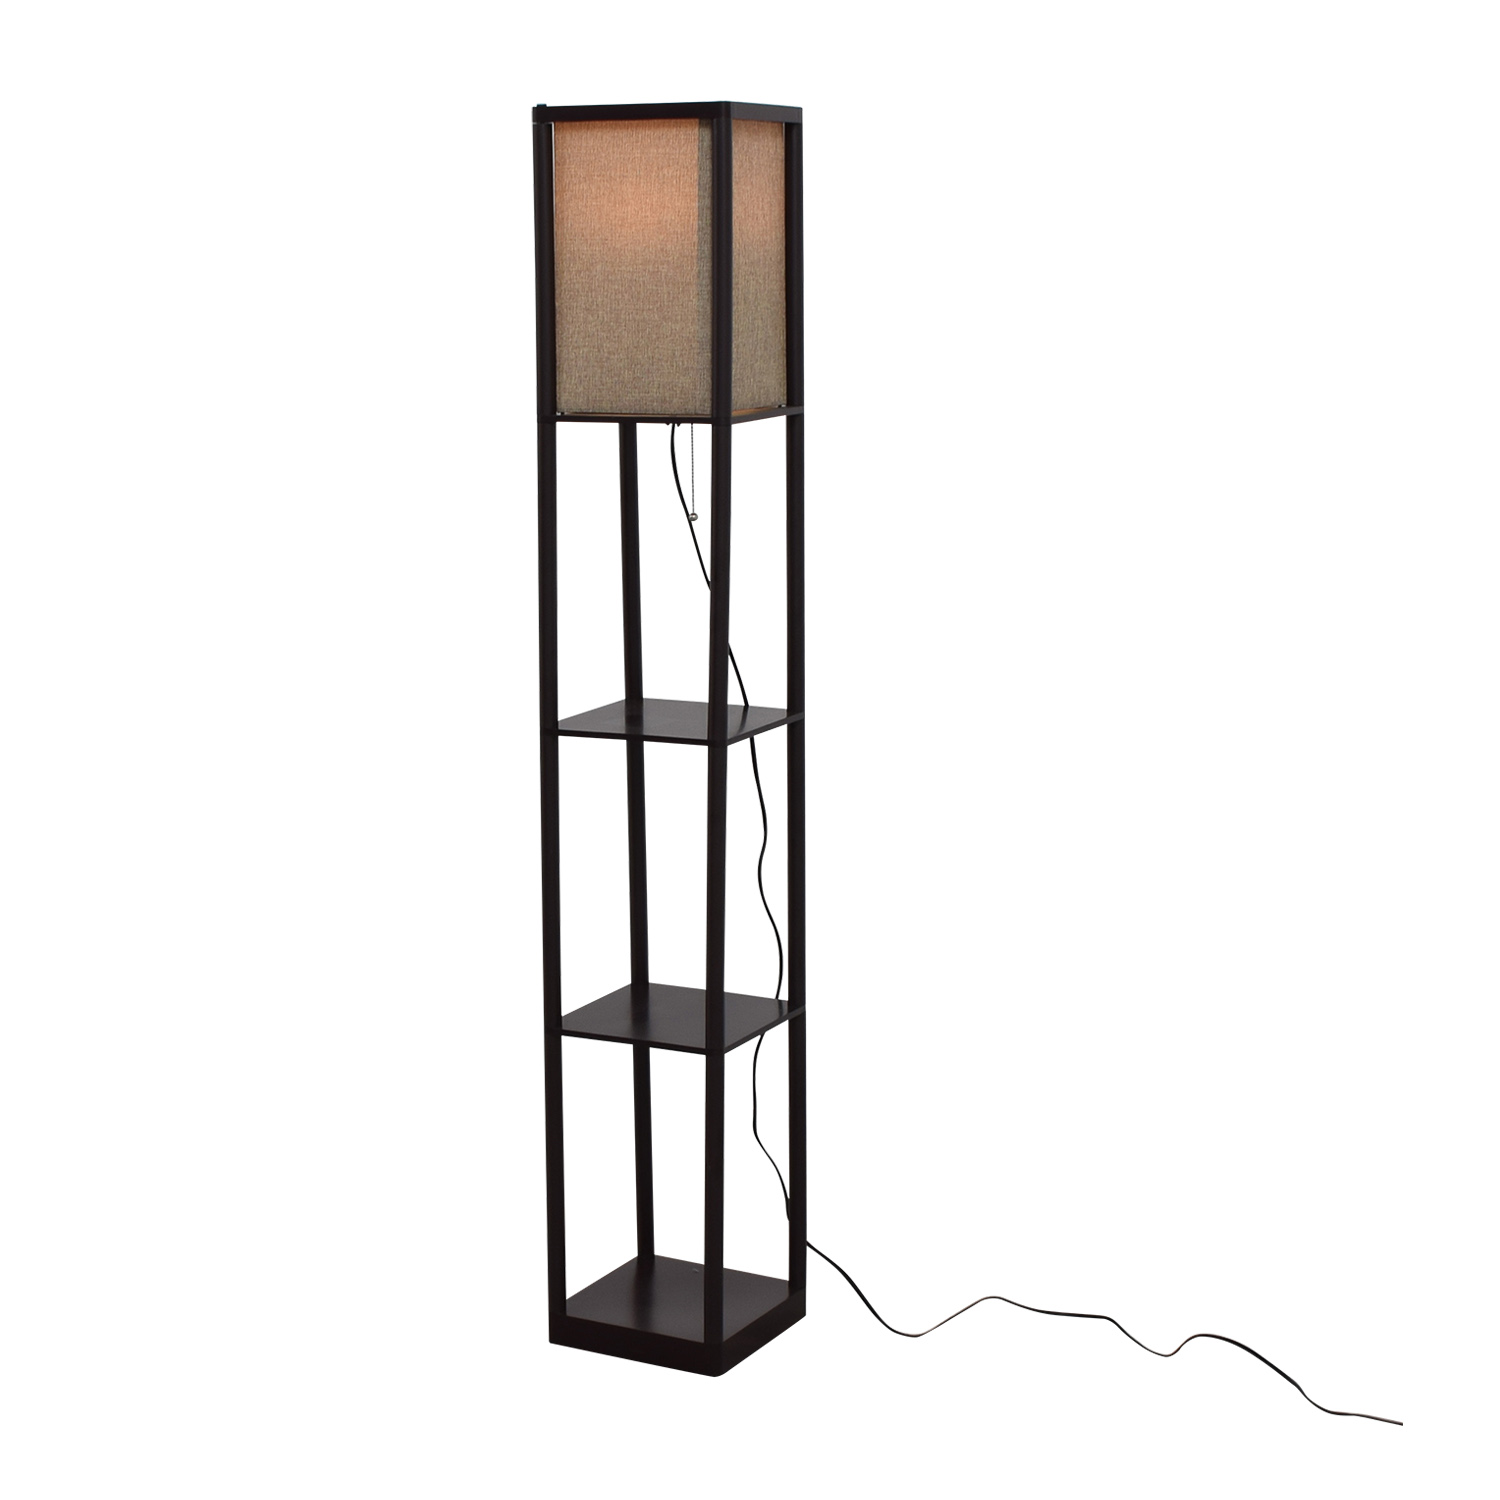 Tripod Floor Lamp With Shelf 71 Off Walmart Walmart Tripod Floor Lamp With Accordion